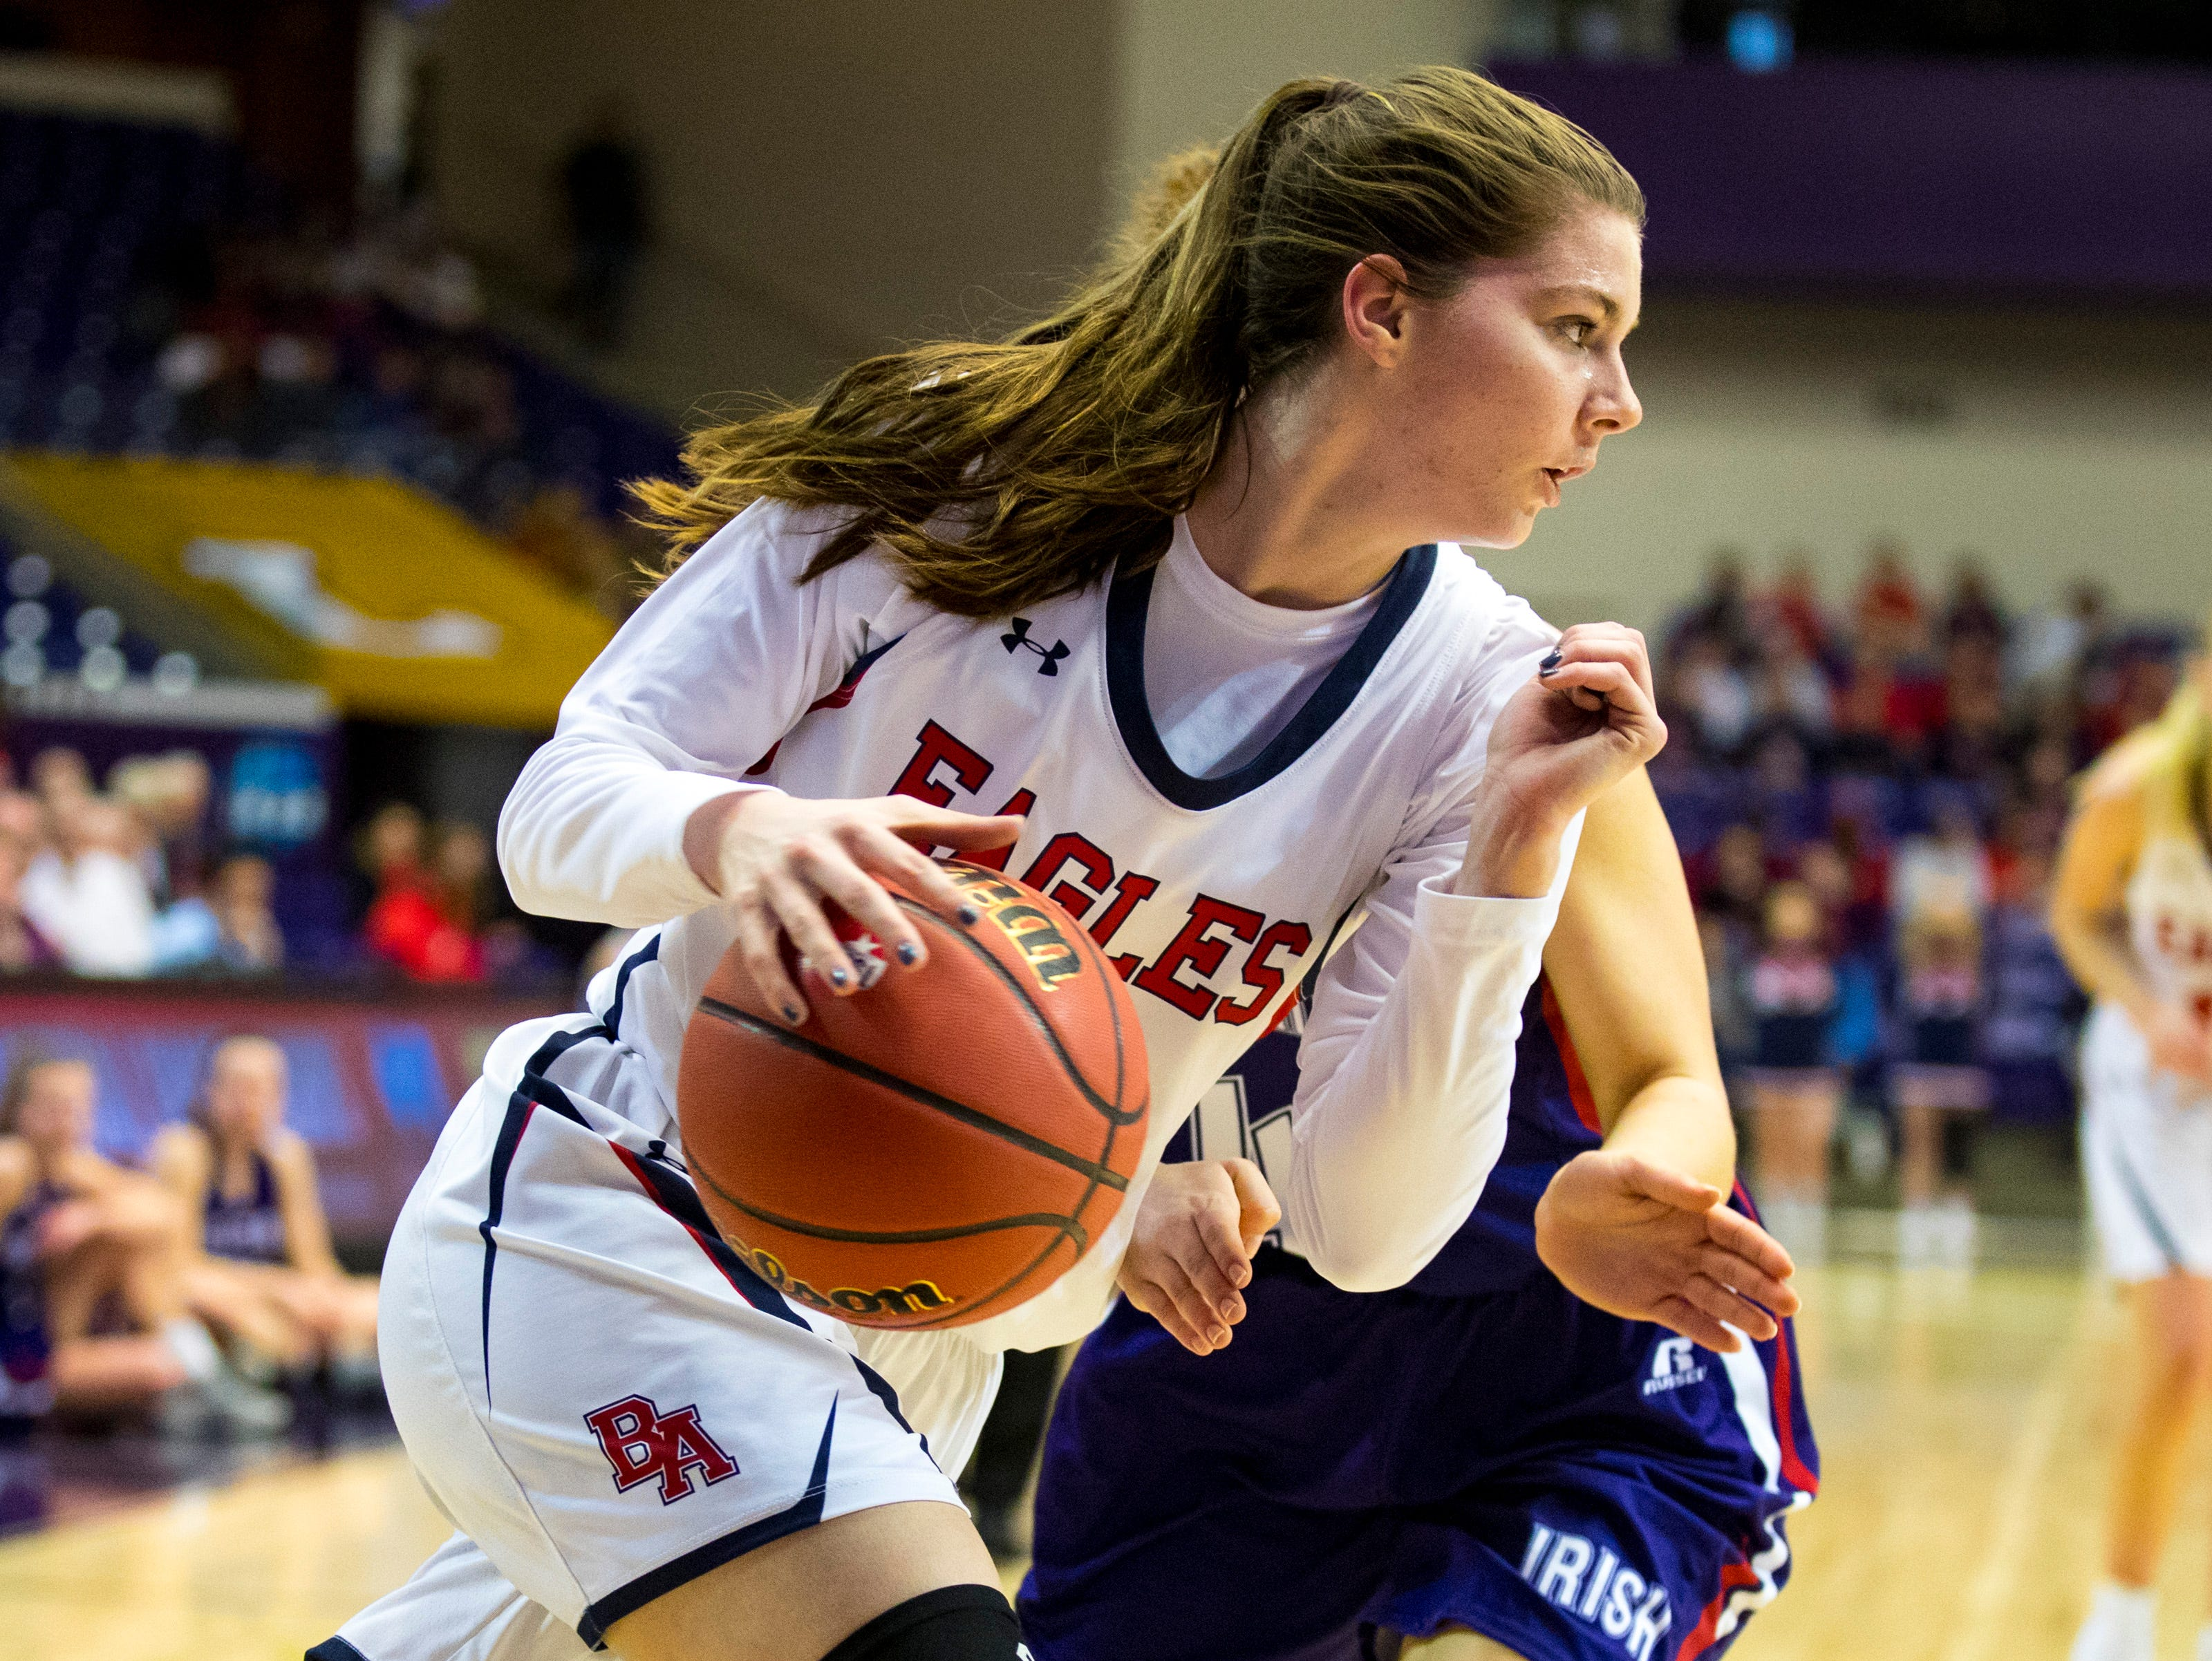 Brentwood Academy's Lauren Graham (12) drives towards the basket during Brentwood Academy's game against Father Ryan in the semifinal round of the TSSAA Division II Class AA State Championships at Lipscomb University's Allen Arena in Nashville on Thursday, Feb. 28, 2019.